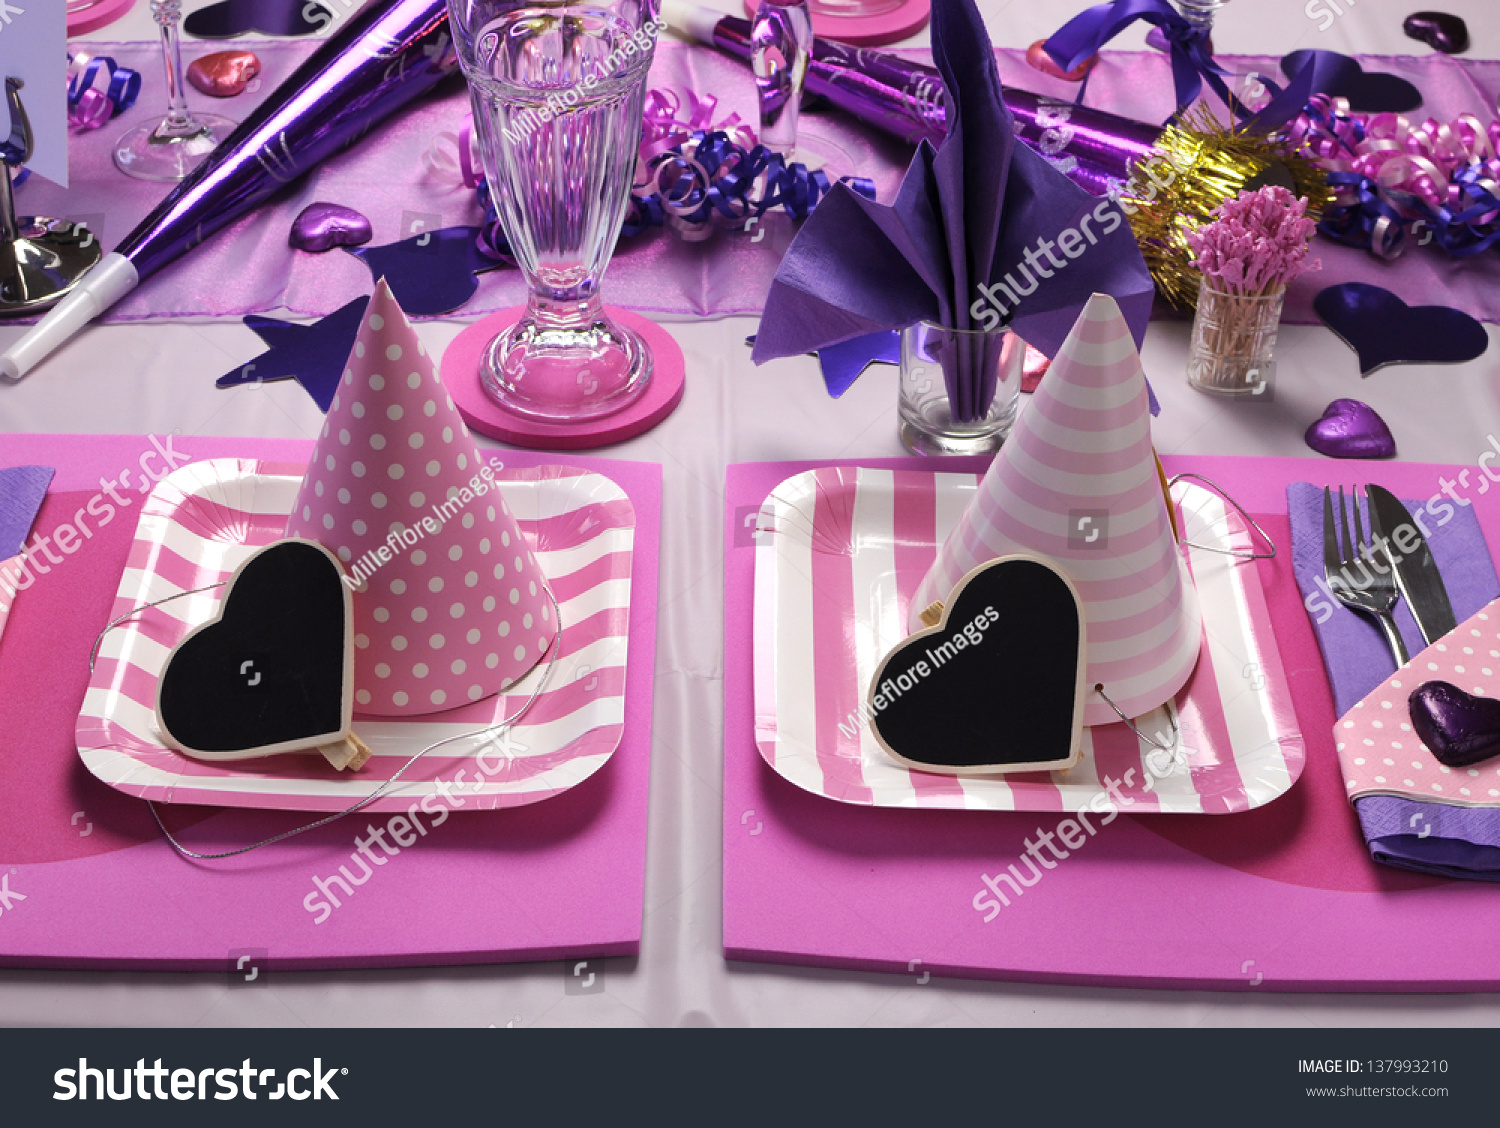 Pink and purple theme party table setting decorations for Dots and stripes party theme